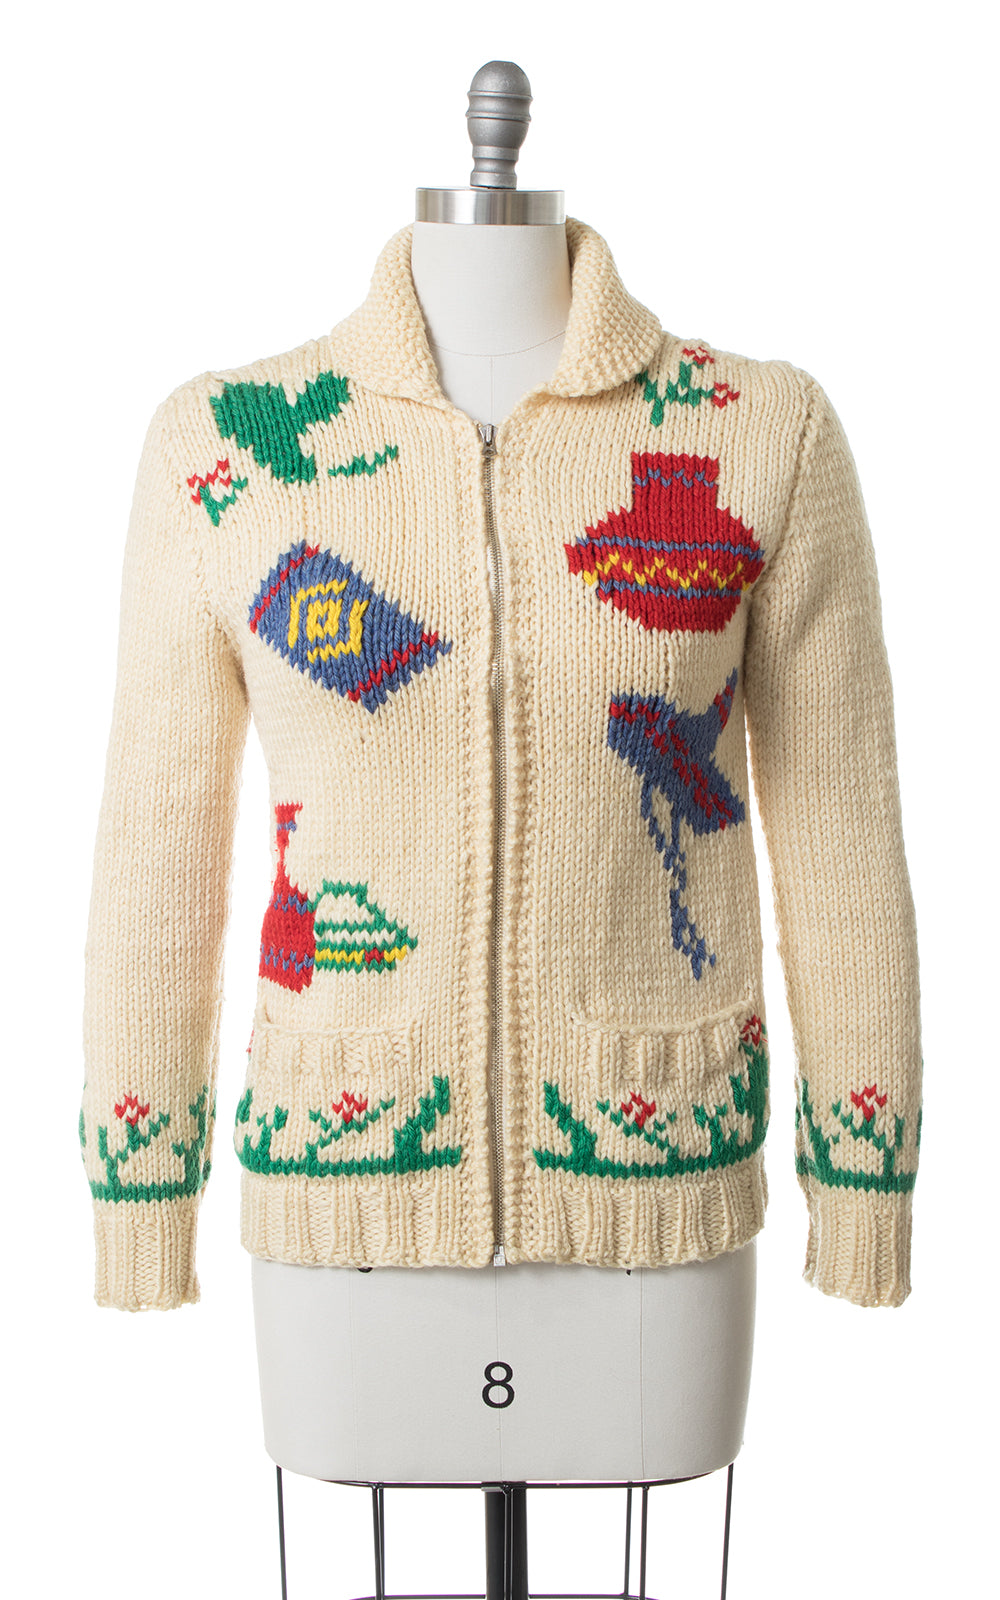 SOLD || 1950s Mexican Novelty Wool Cowichan Cardigan | small/medium